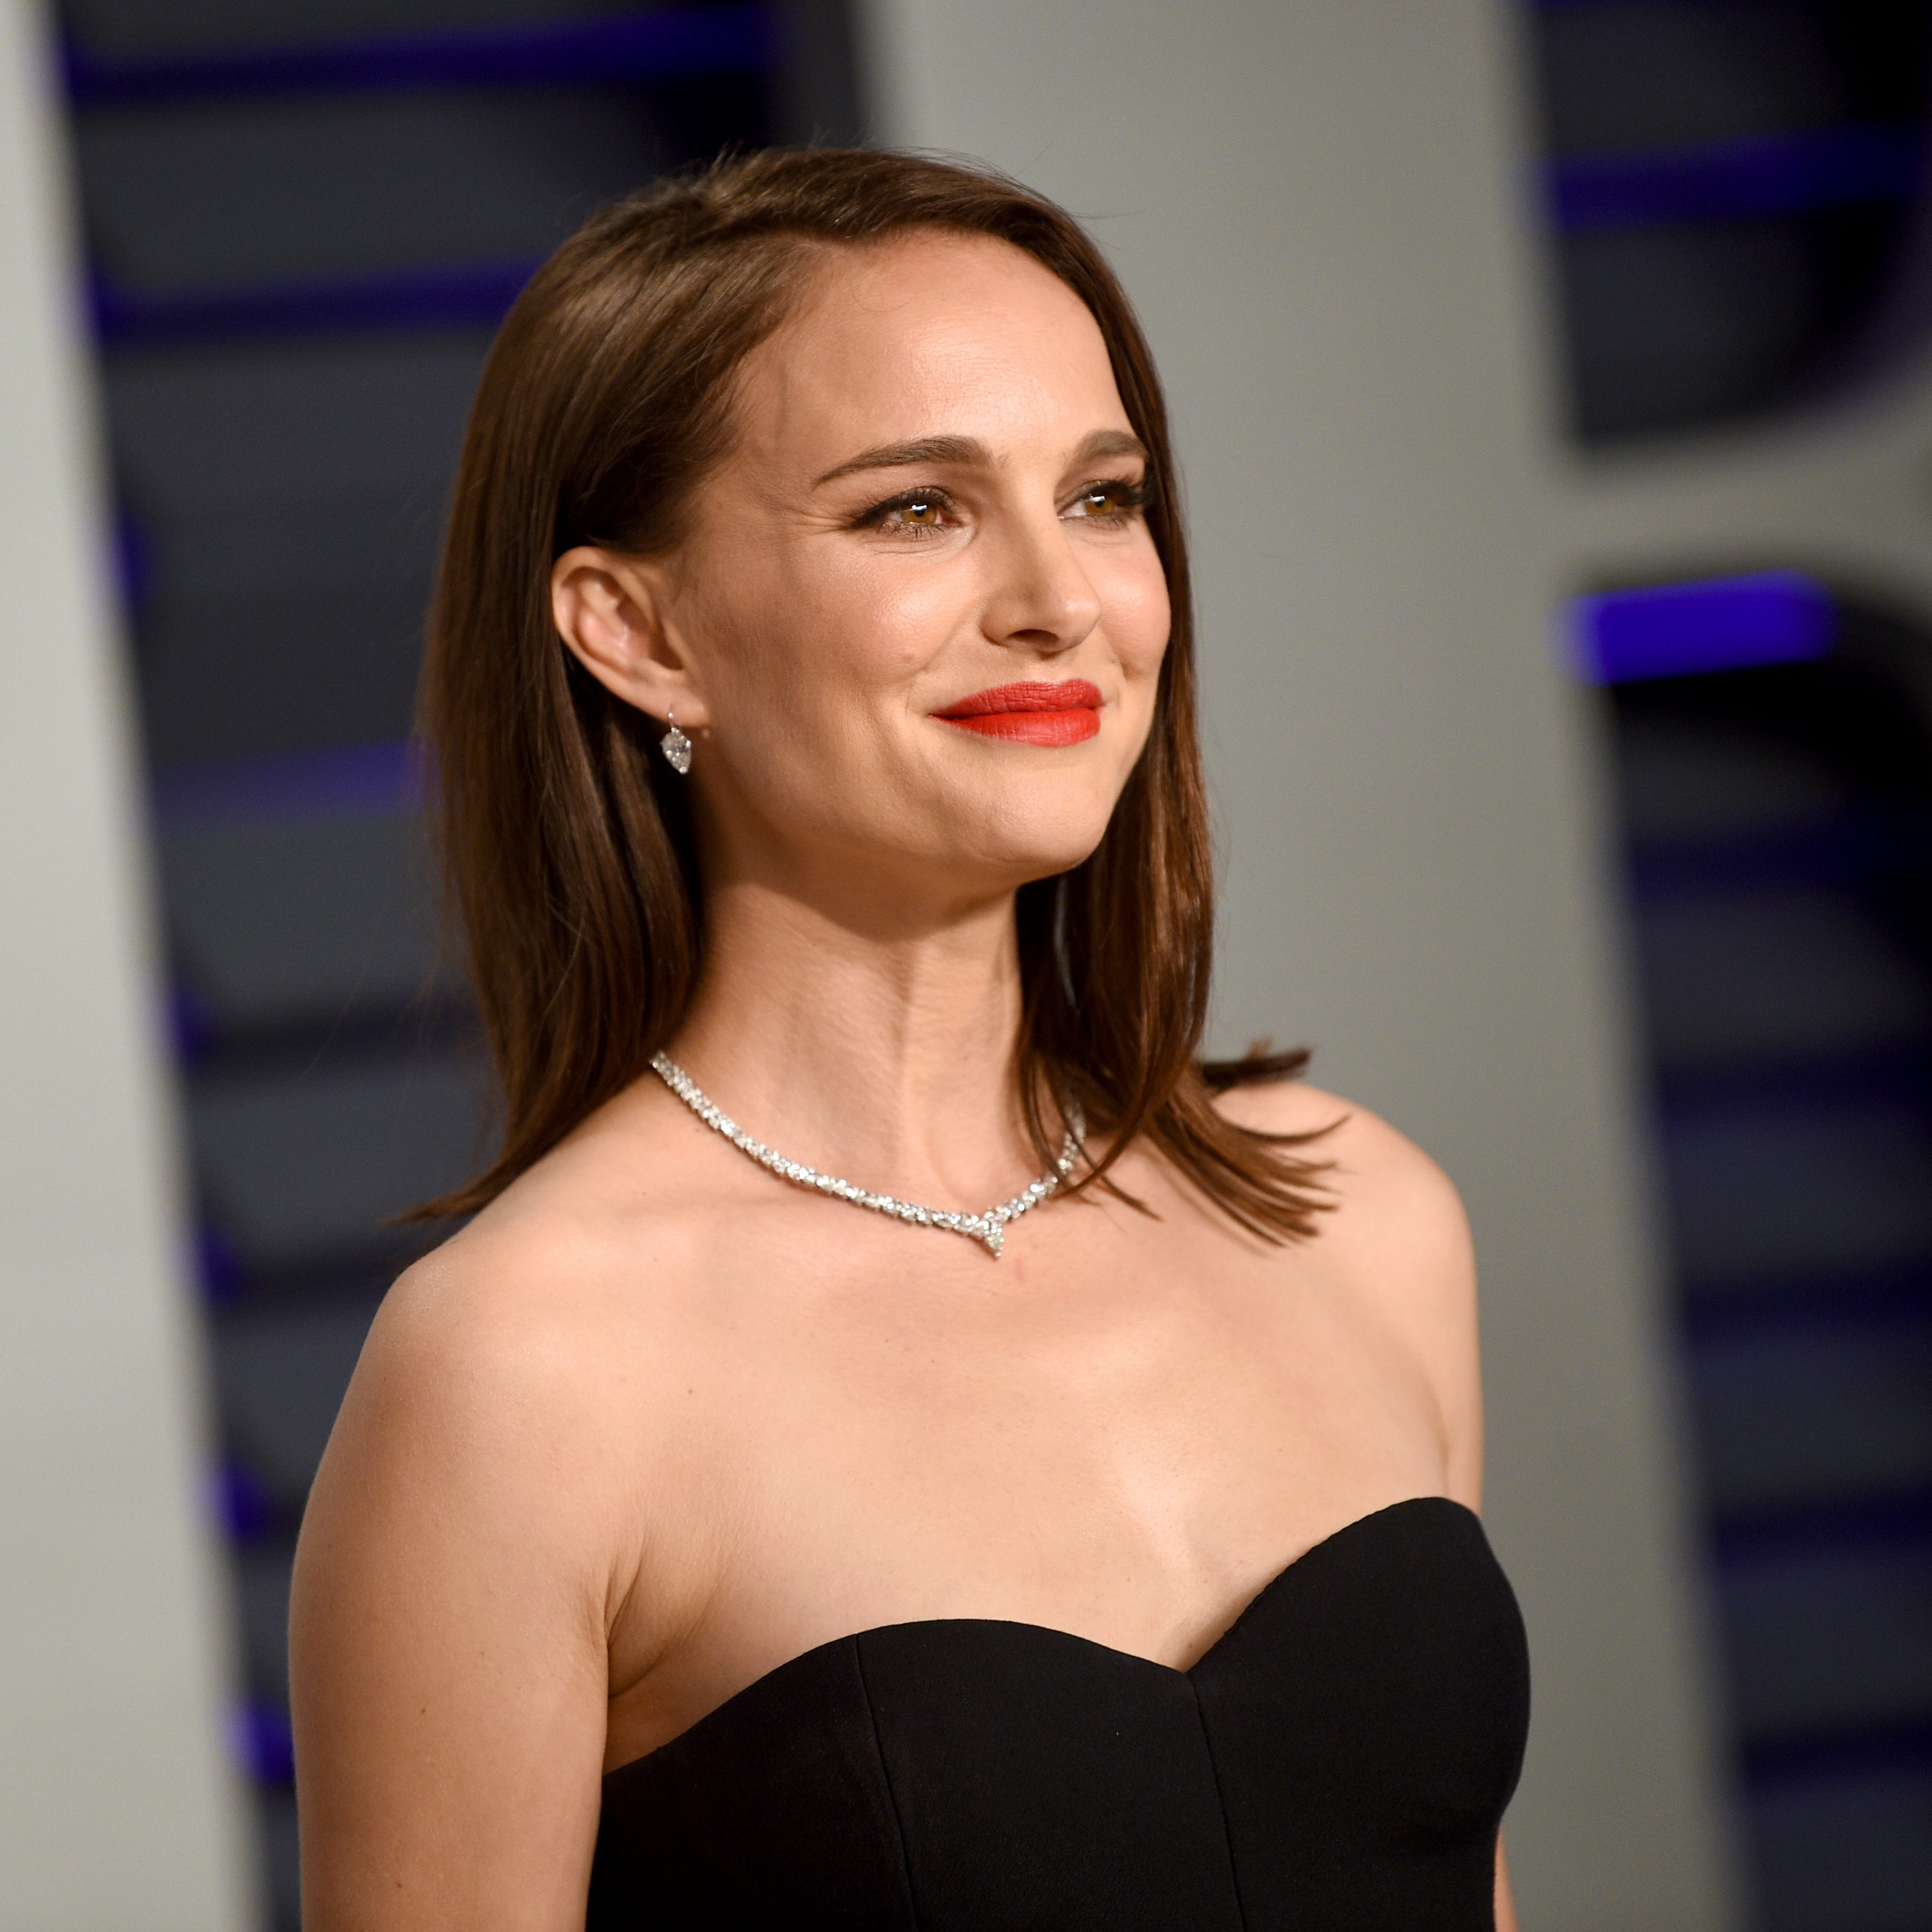 Natalie Portman to star in movie based on diaper-wearing astronaut Lisa Nowak